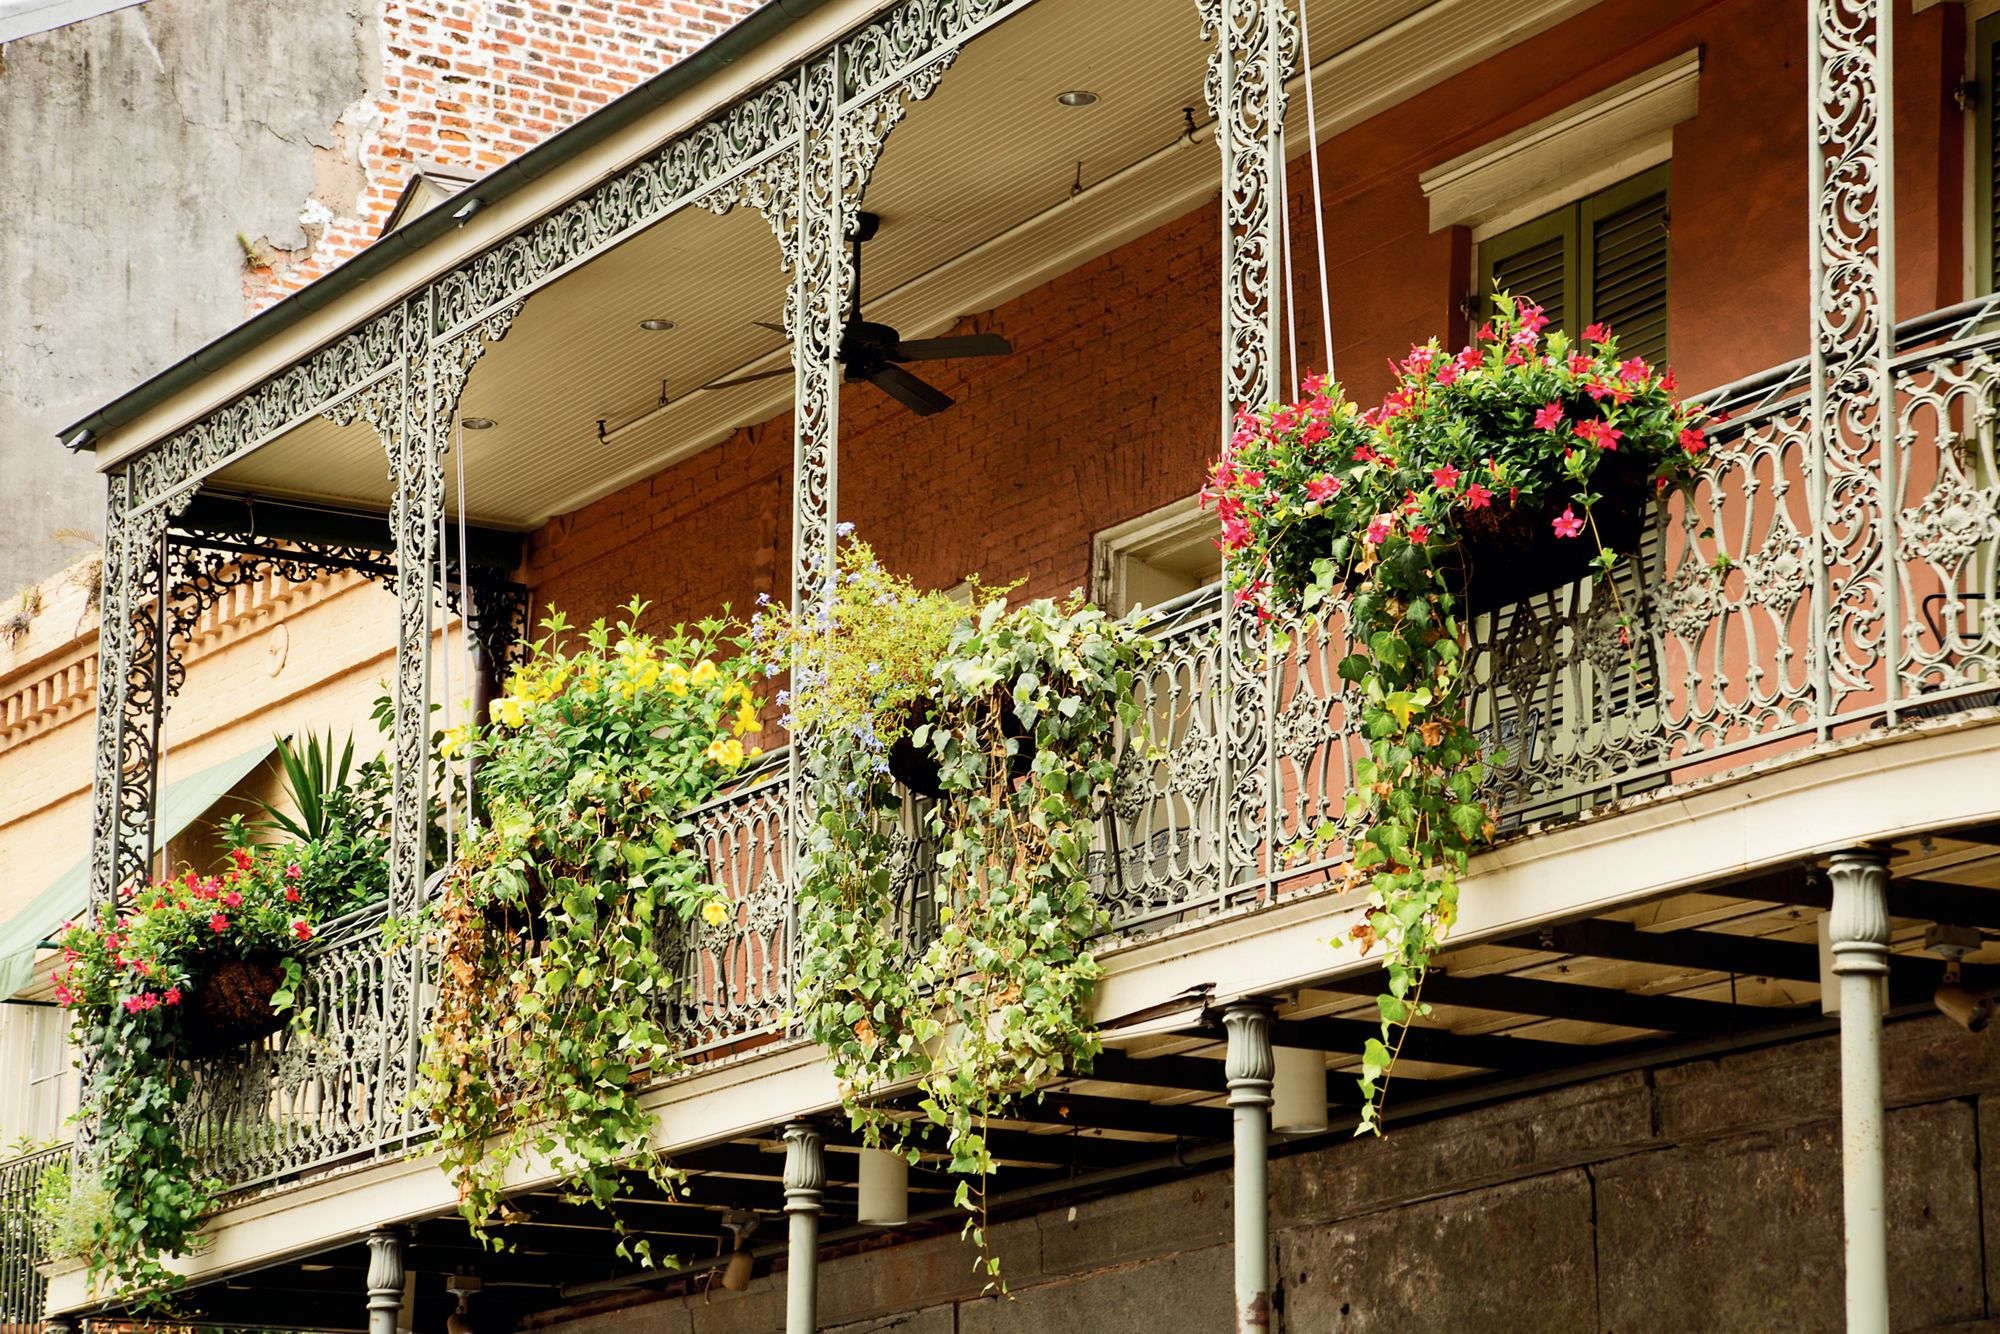 Leaves from flowering plants hang down from a balcony